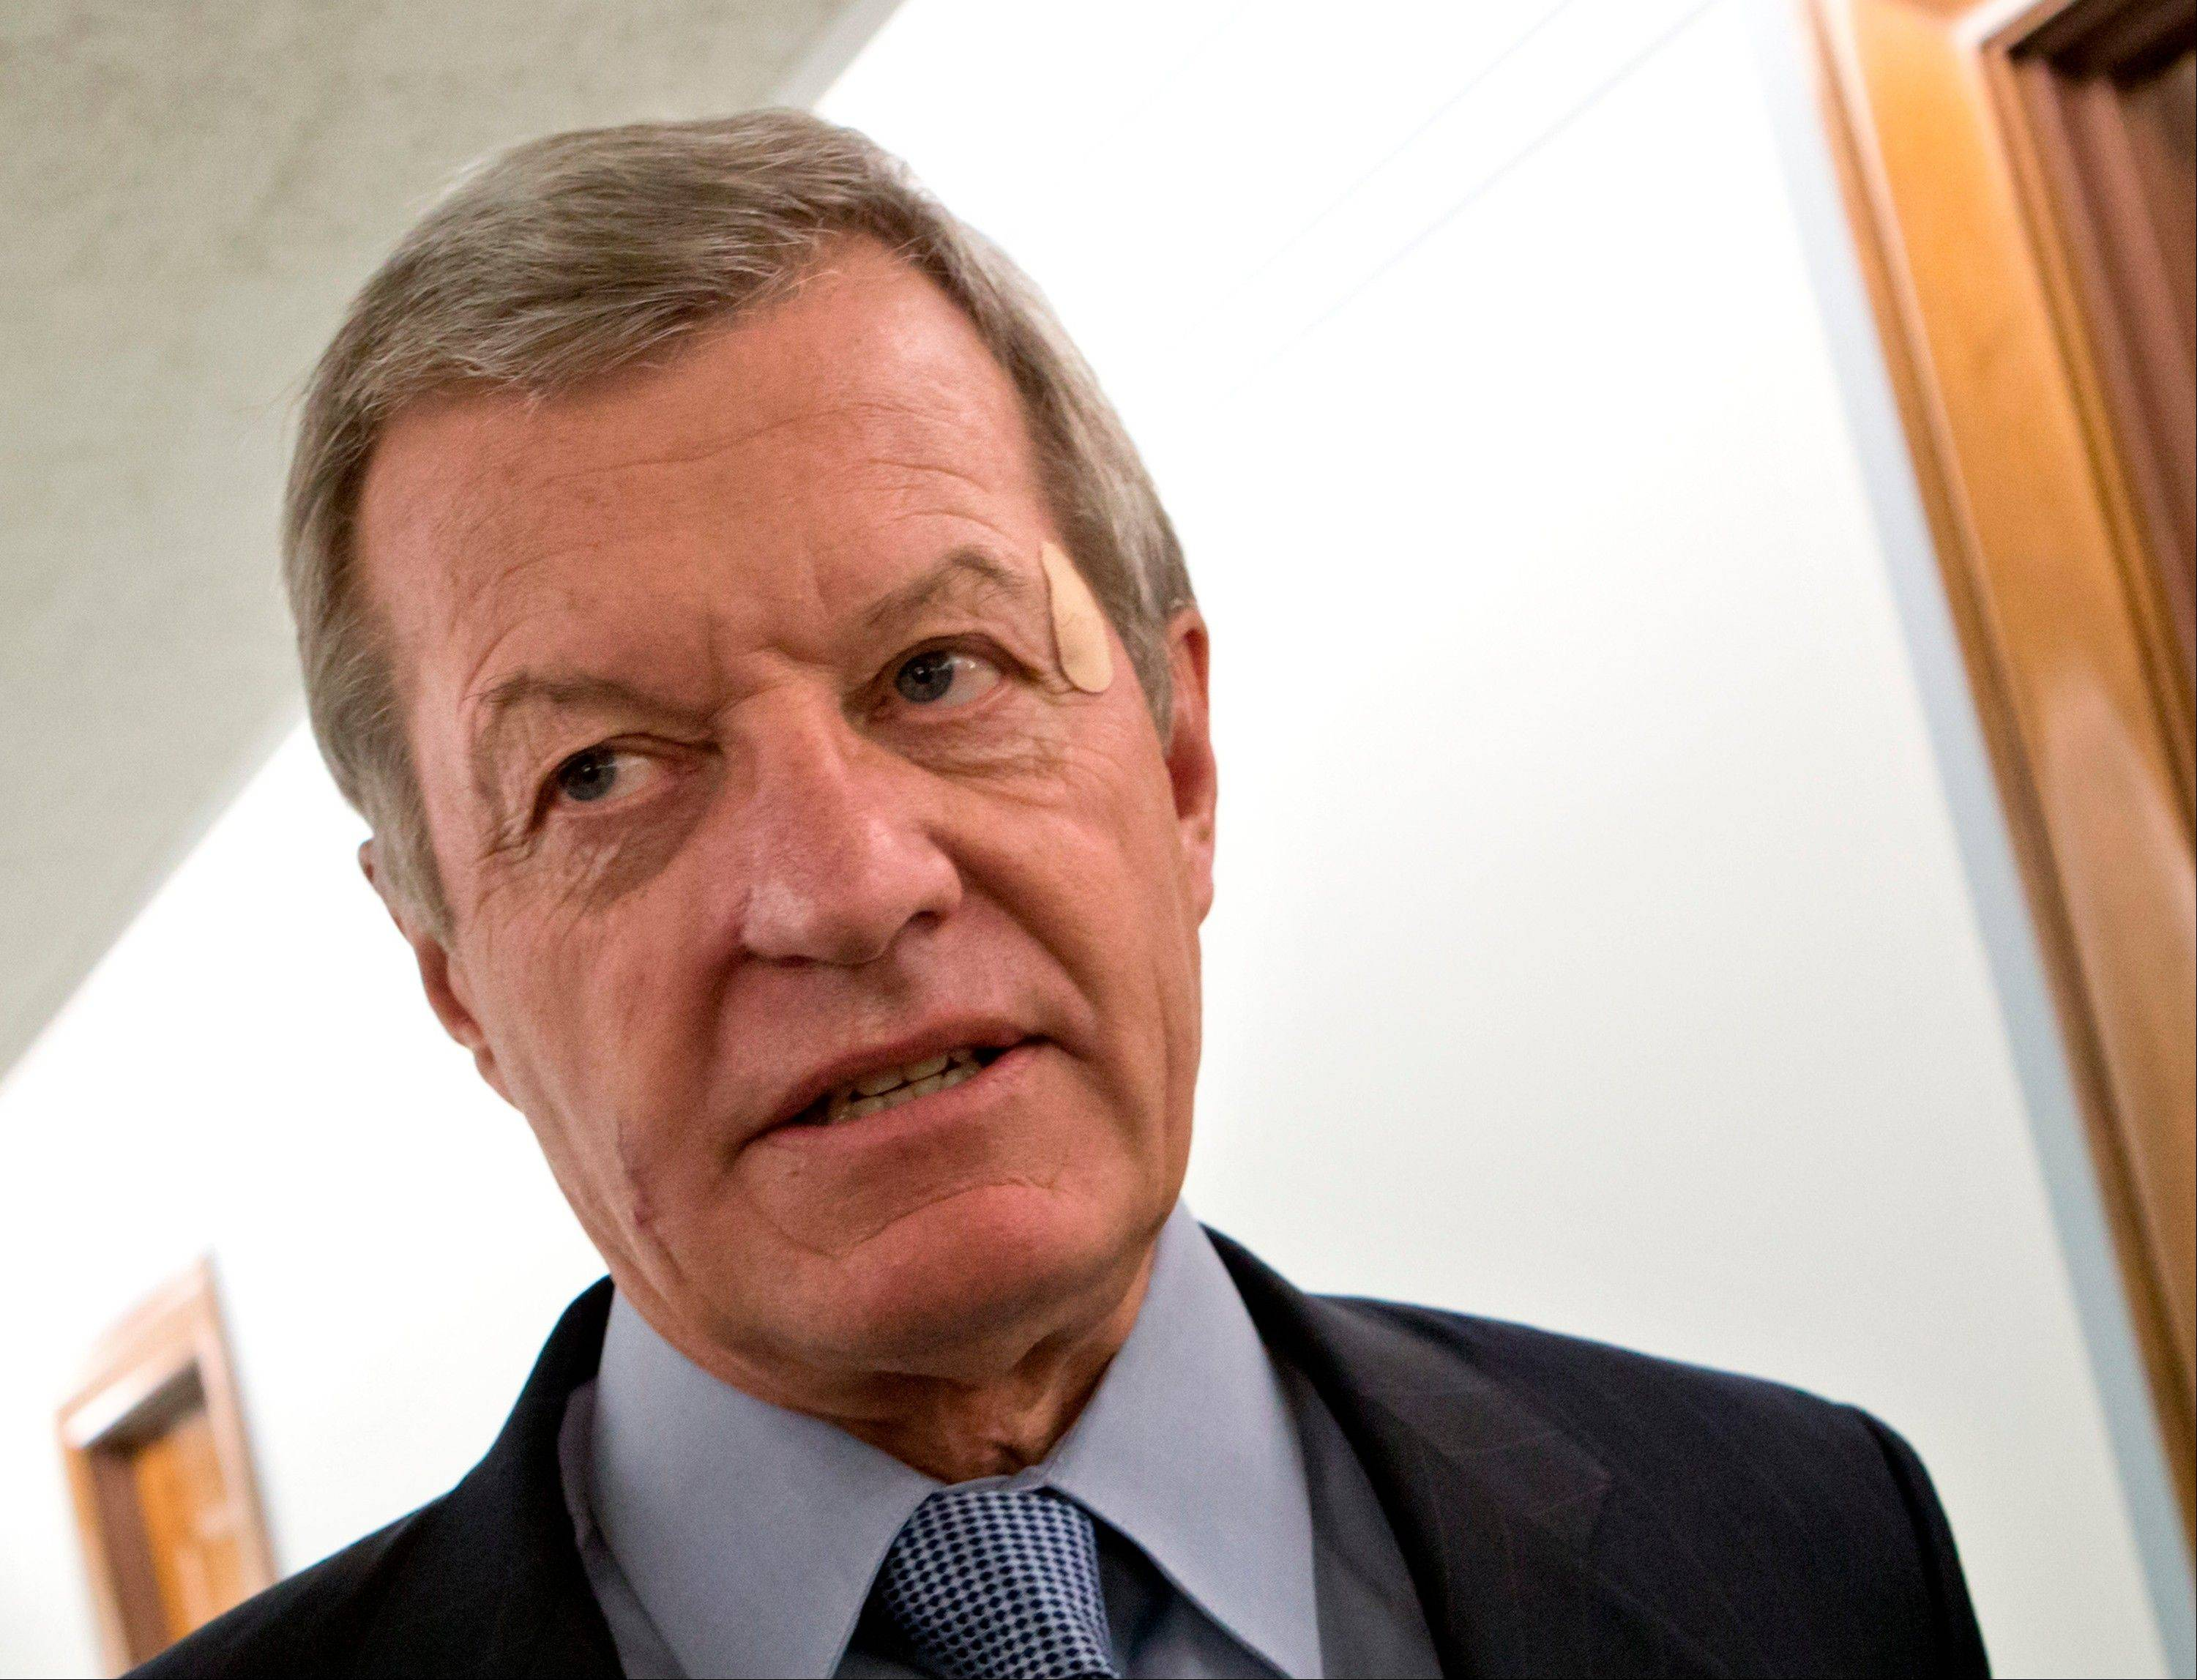 Senate Finance Committee Chairman Max Baucus, D-Mont., plans to retire.